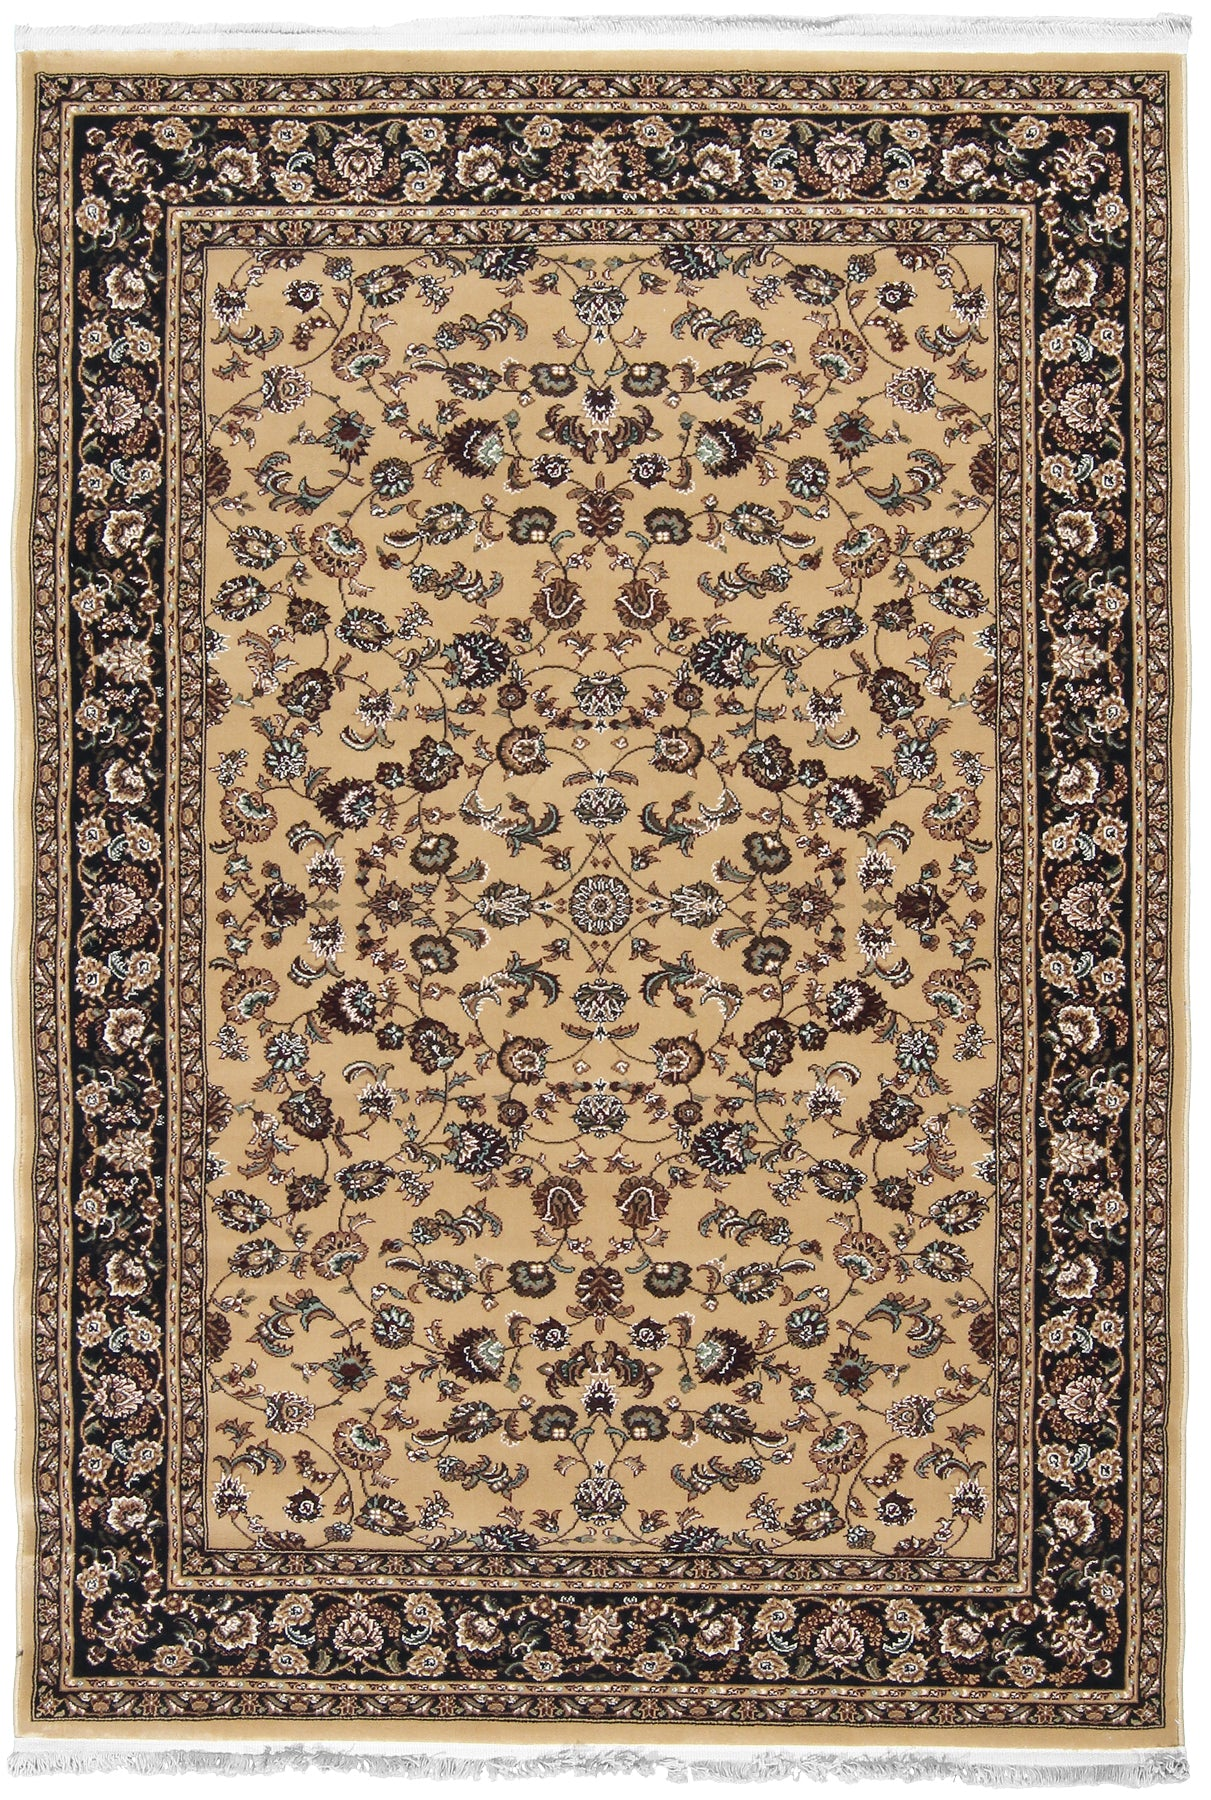 Tabriz Design Machine Made Rug-Turco Persian Rug Company Inc.